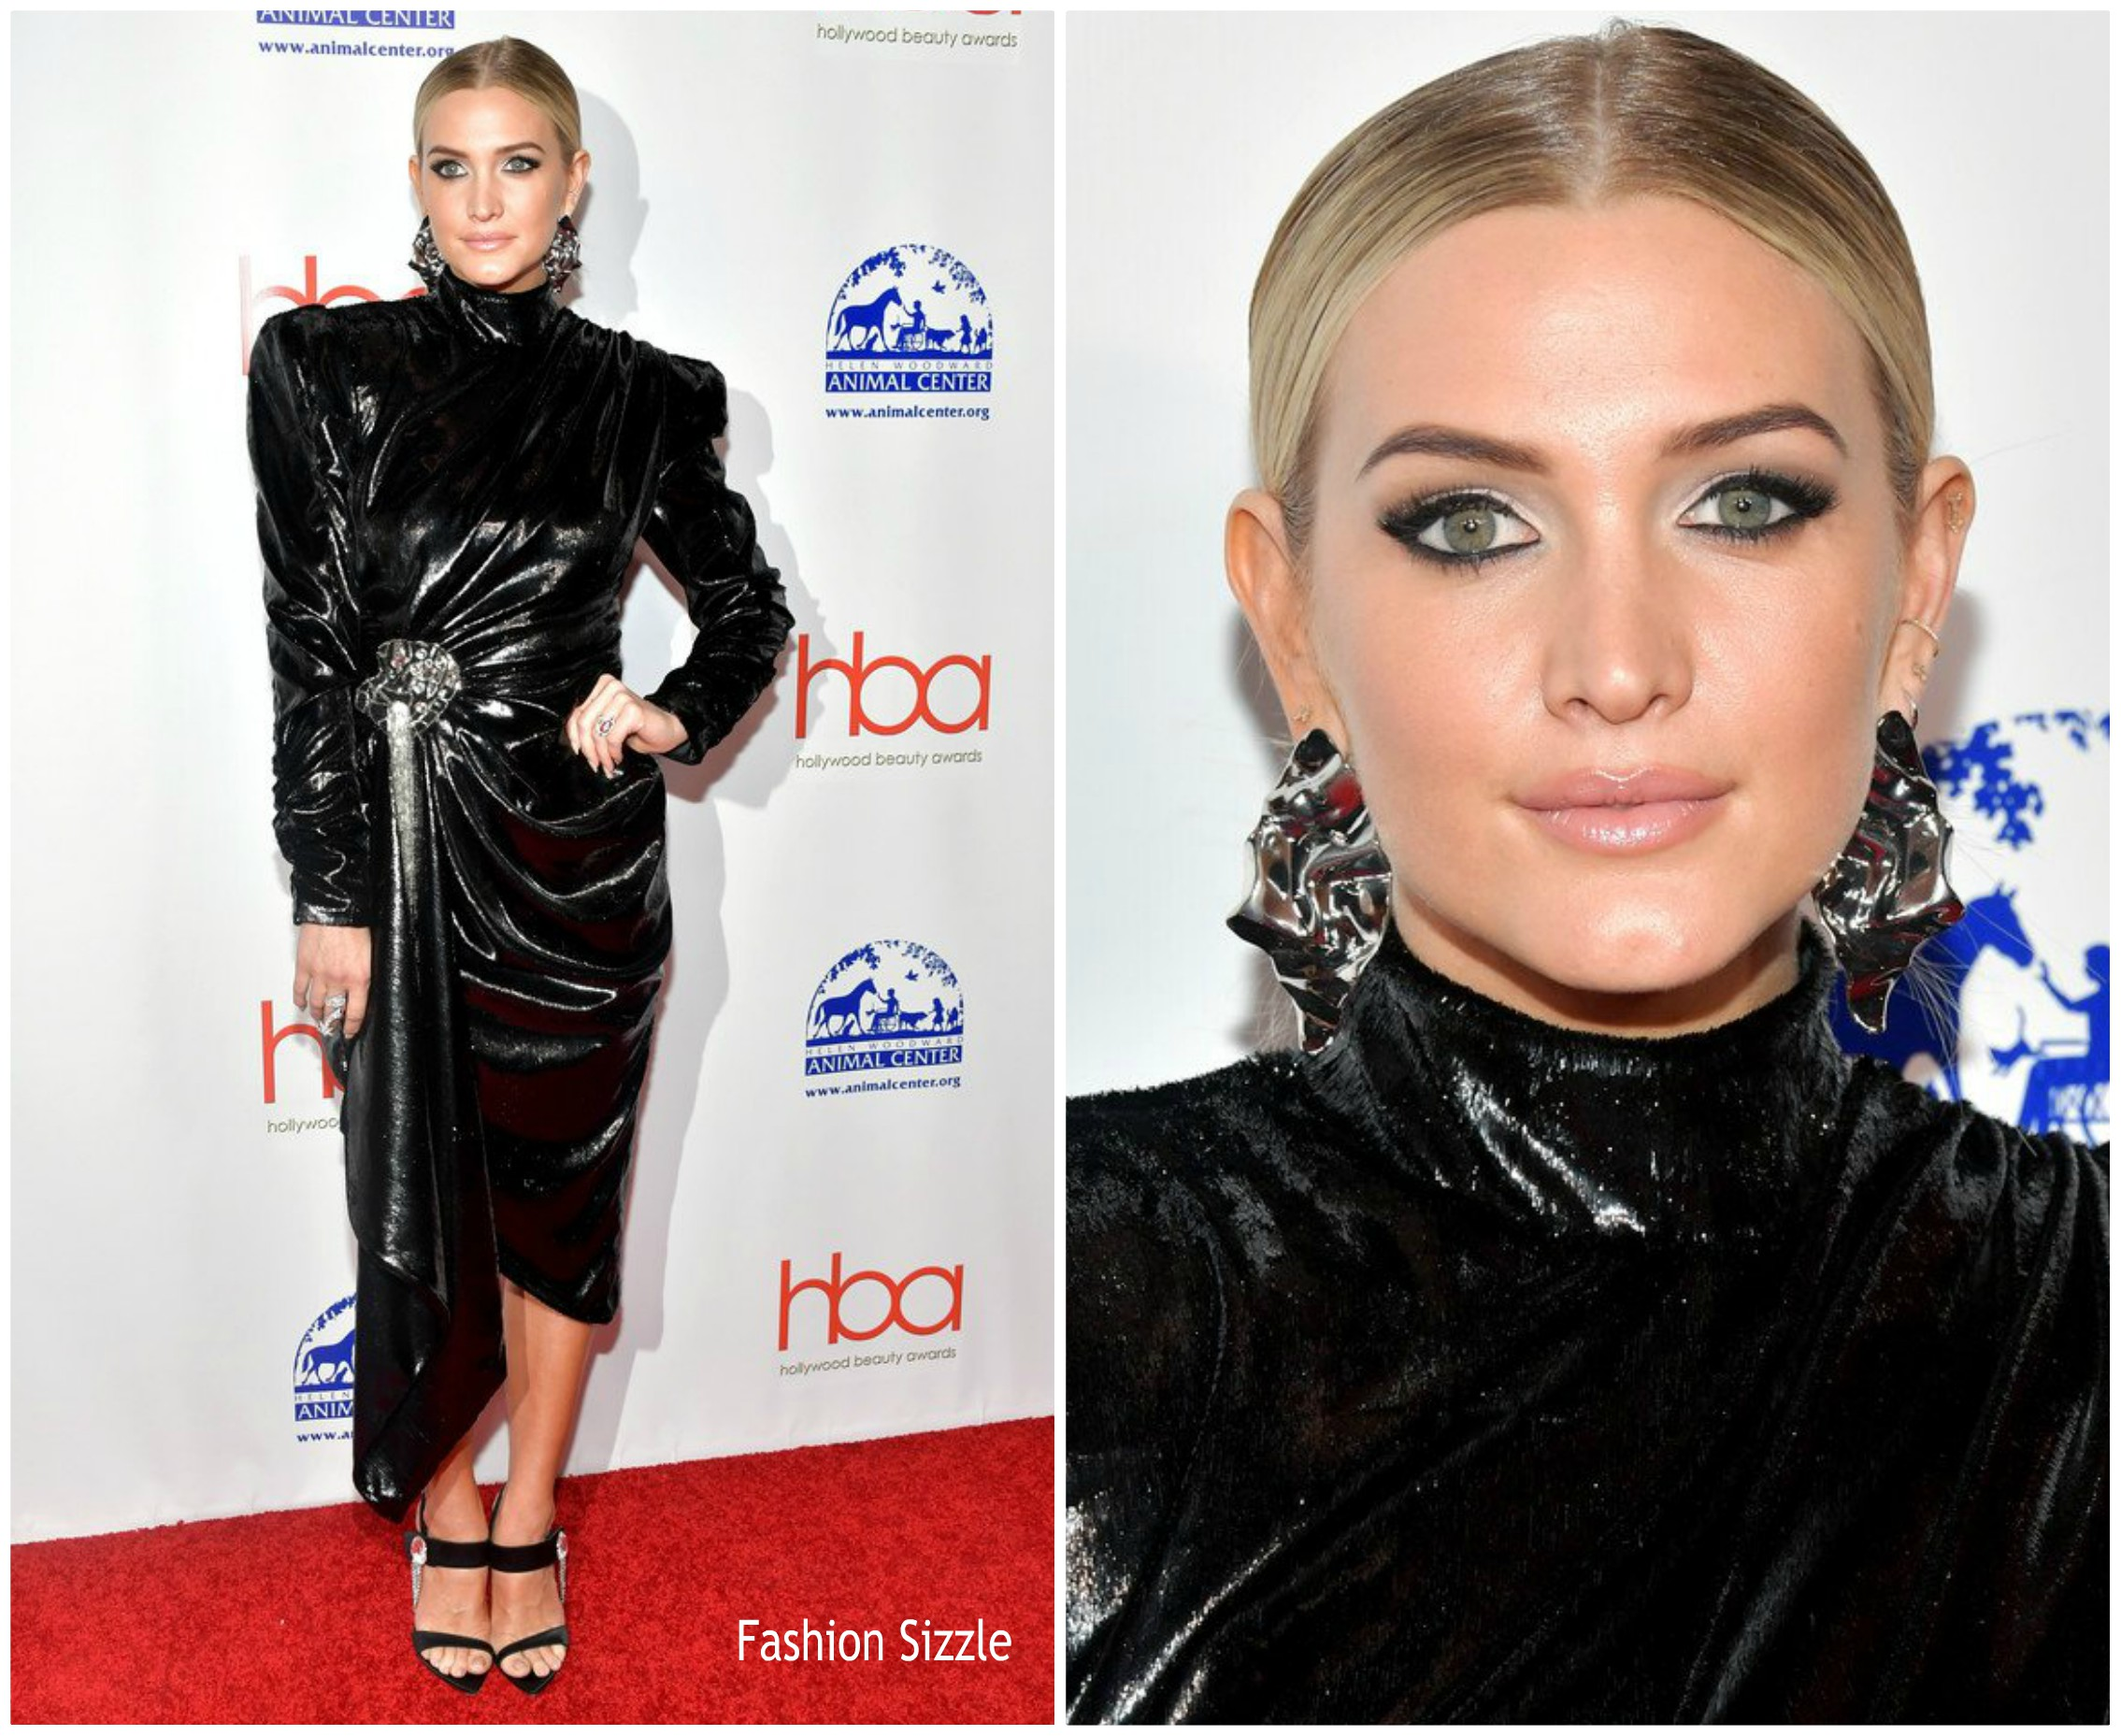 ashlee-simpson-in-galia-lahav-2019-hollywwod-beauty-awards